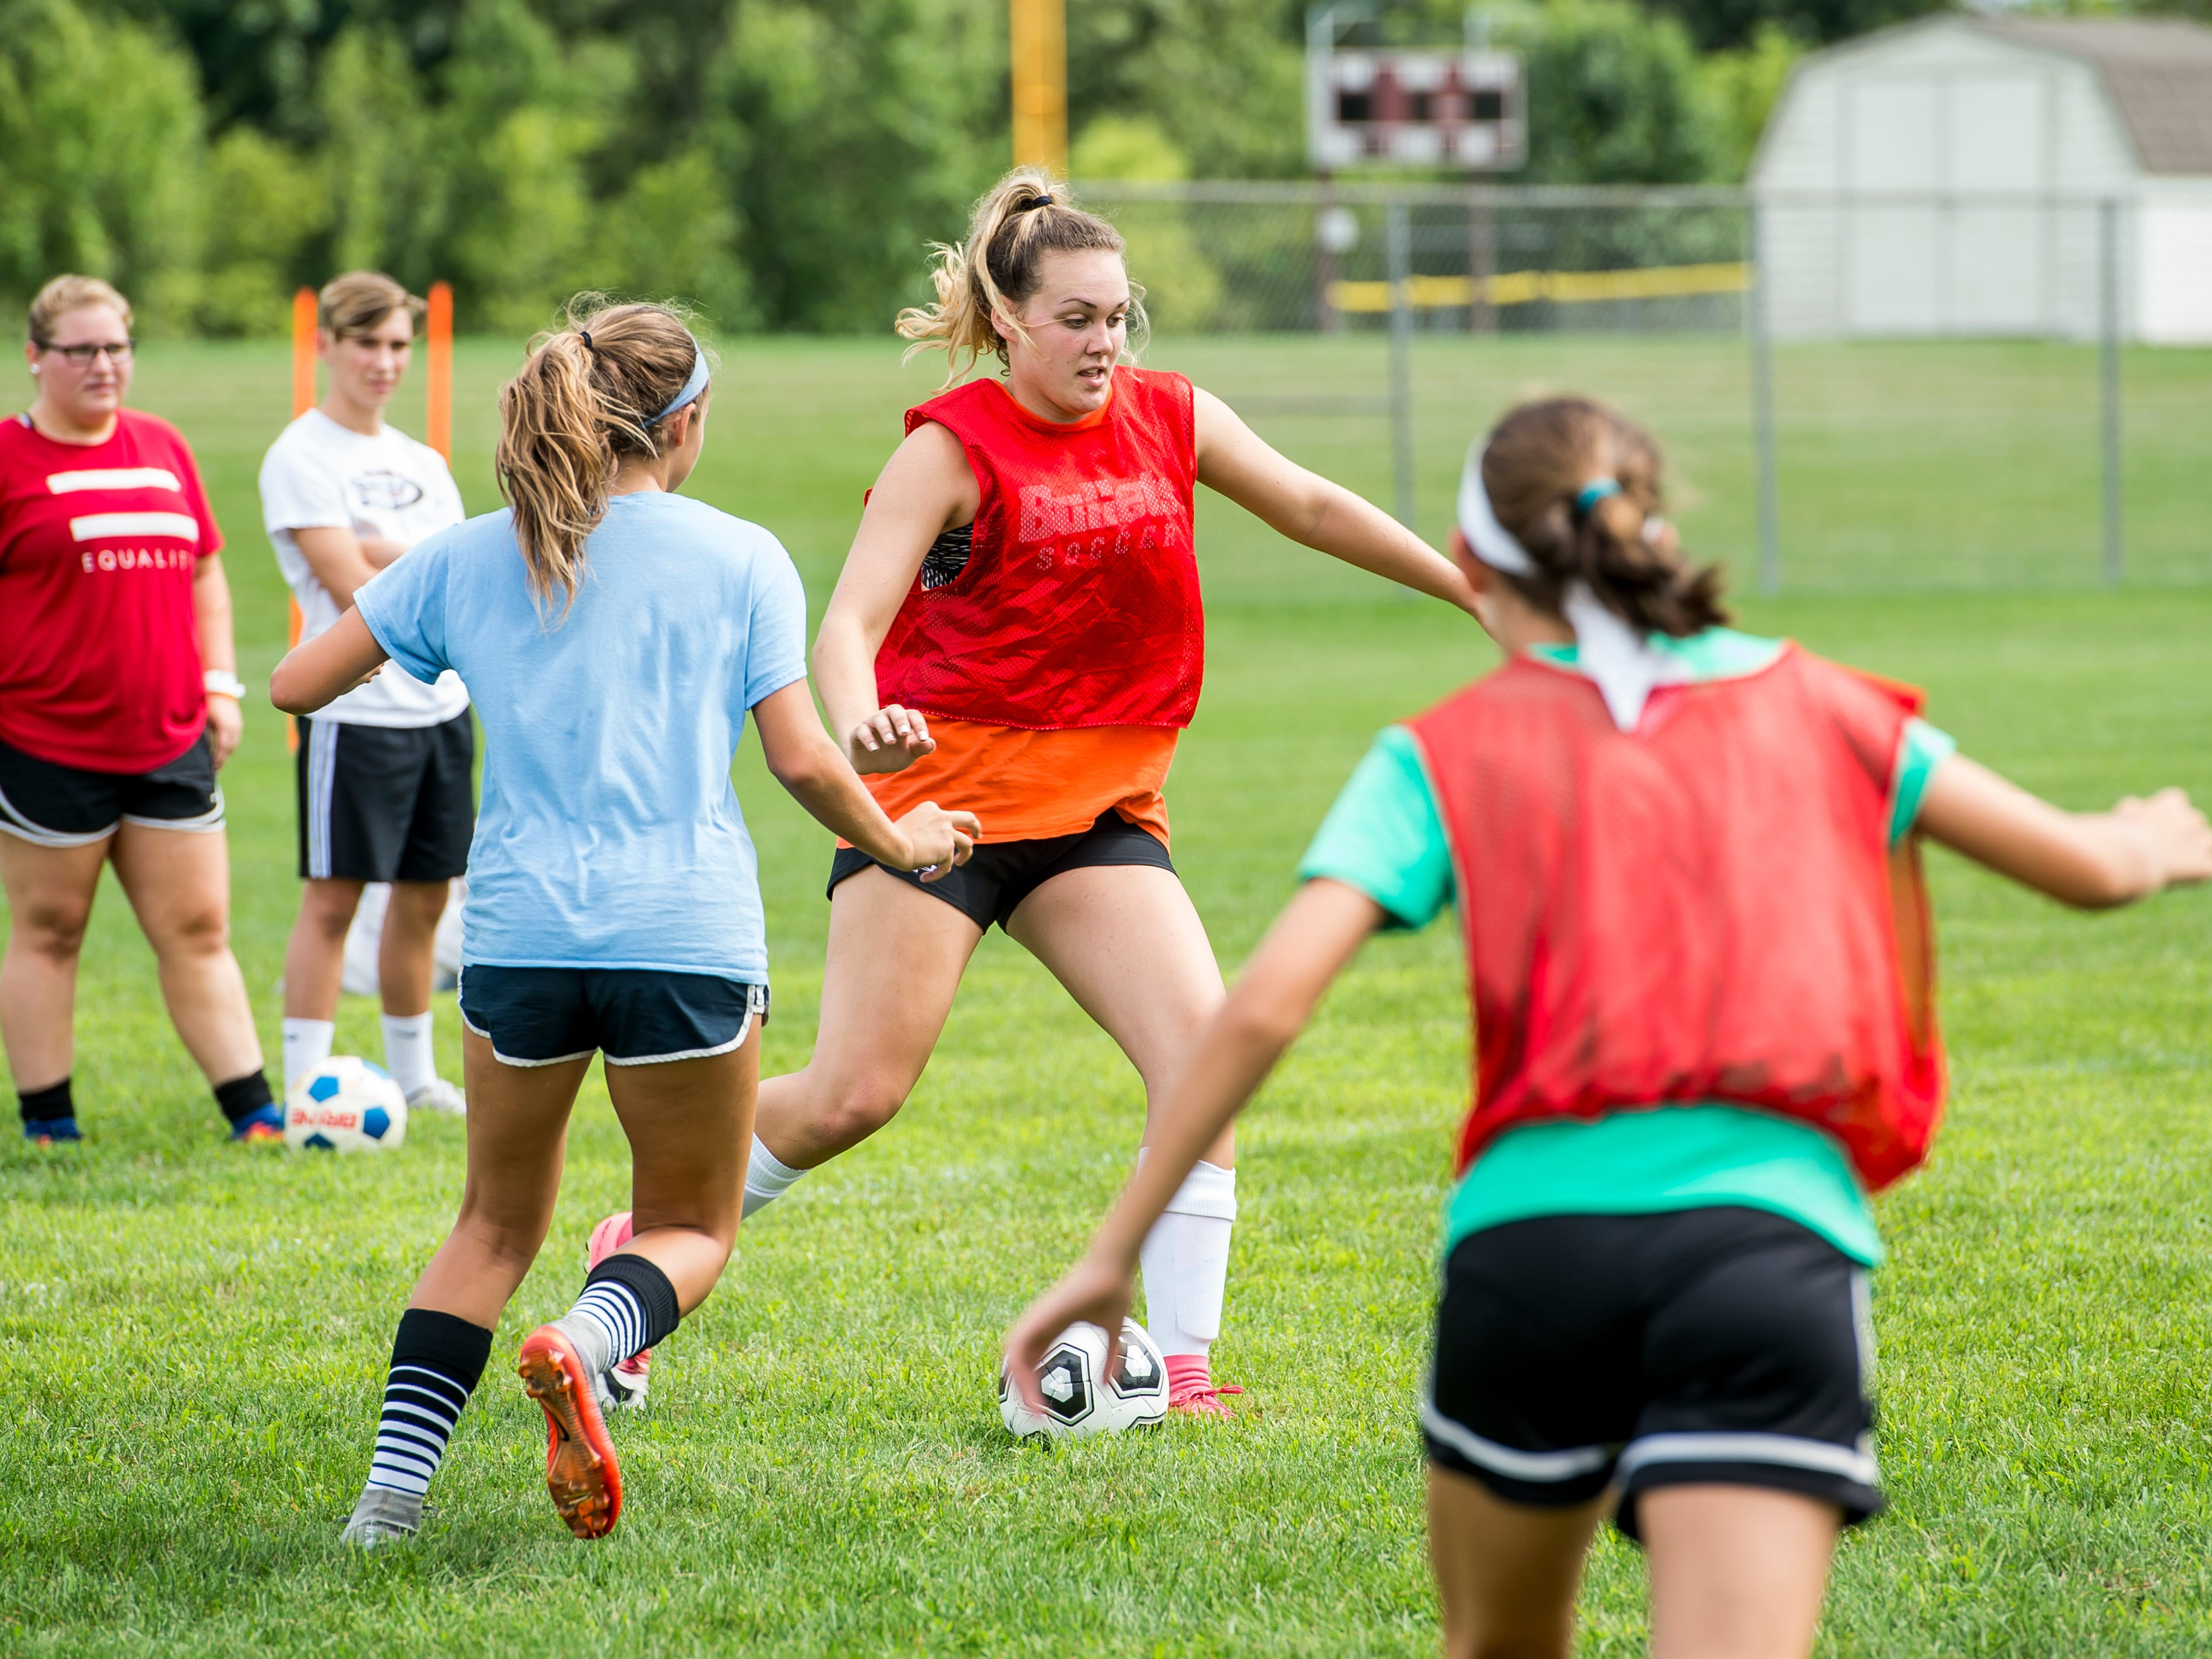 Gettysburg's Taylor Richardson kicks a soccer ball during the first day of fall sports practice on Monday, August 13, 2018.